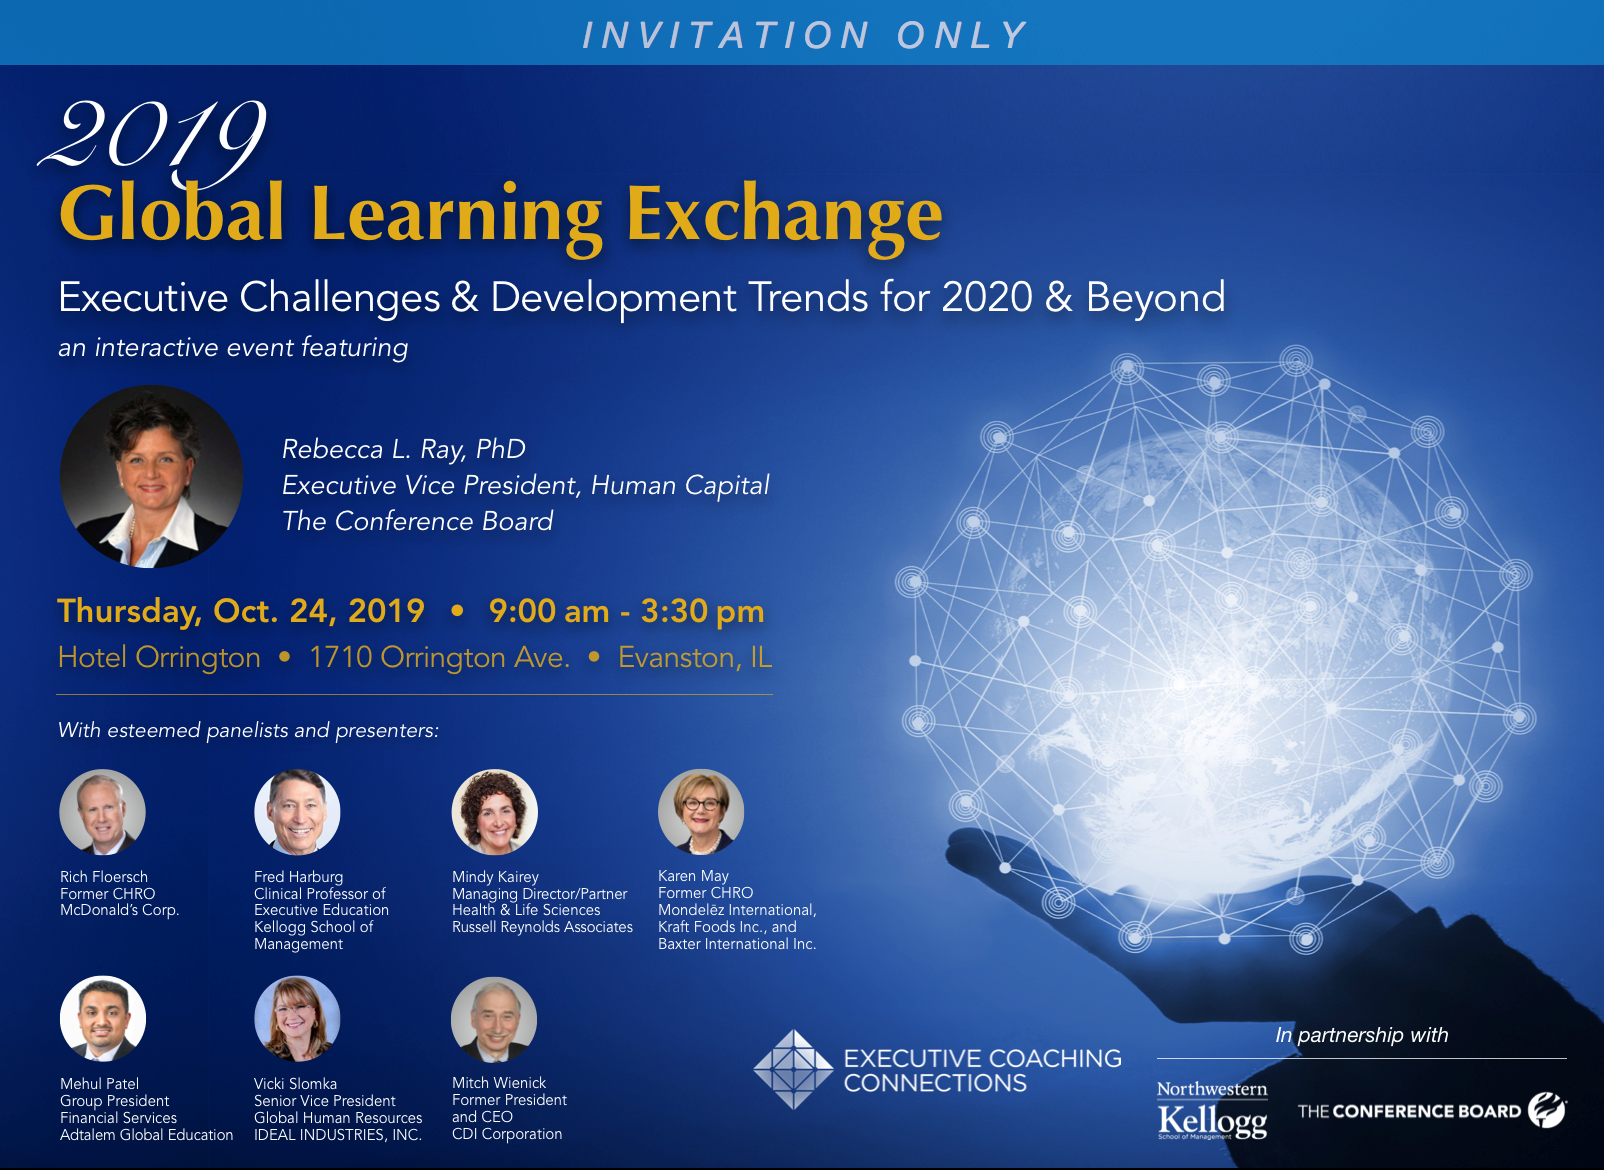 Executive Coaching Connections' 2019 Global Learning Exchange Details